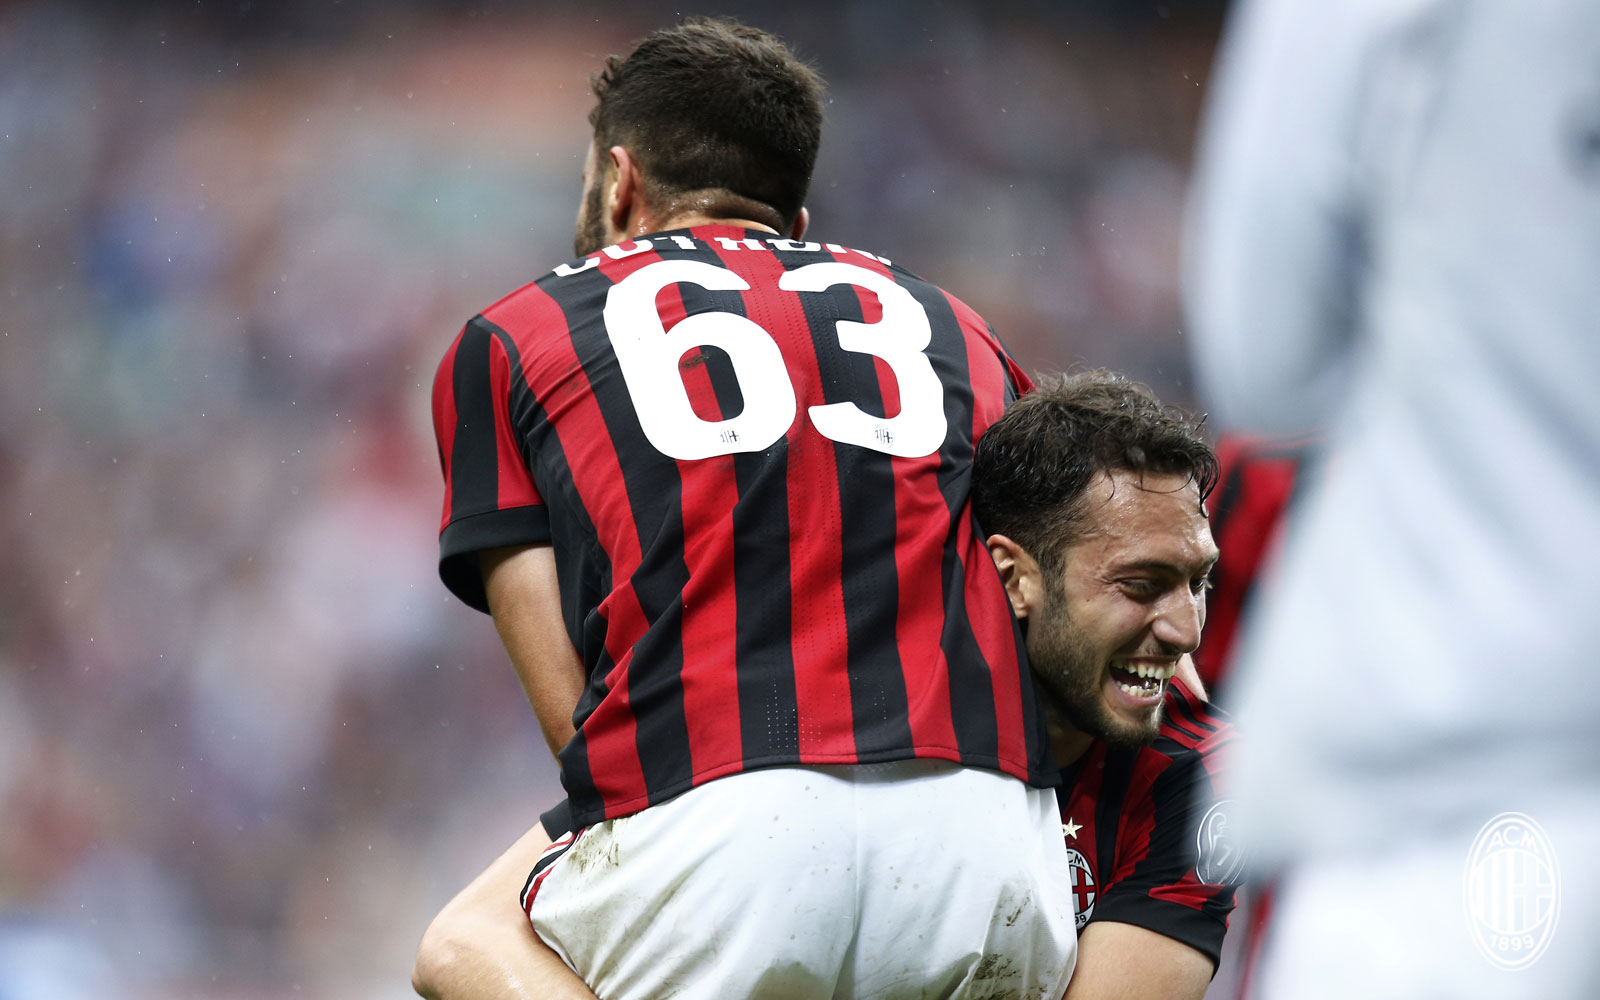 Patrick Cutrone and Hakan Çalhanoğlu celebrating during Milan-Fiorentina at Stadio San Siro on May 20, 2018. (@acmilan.com)